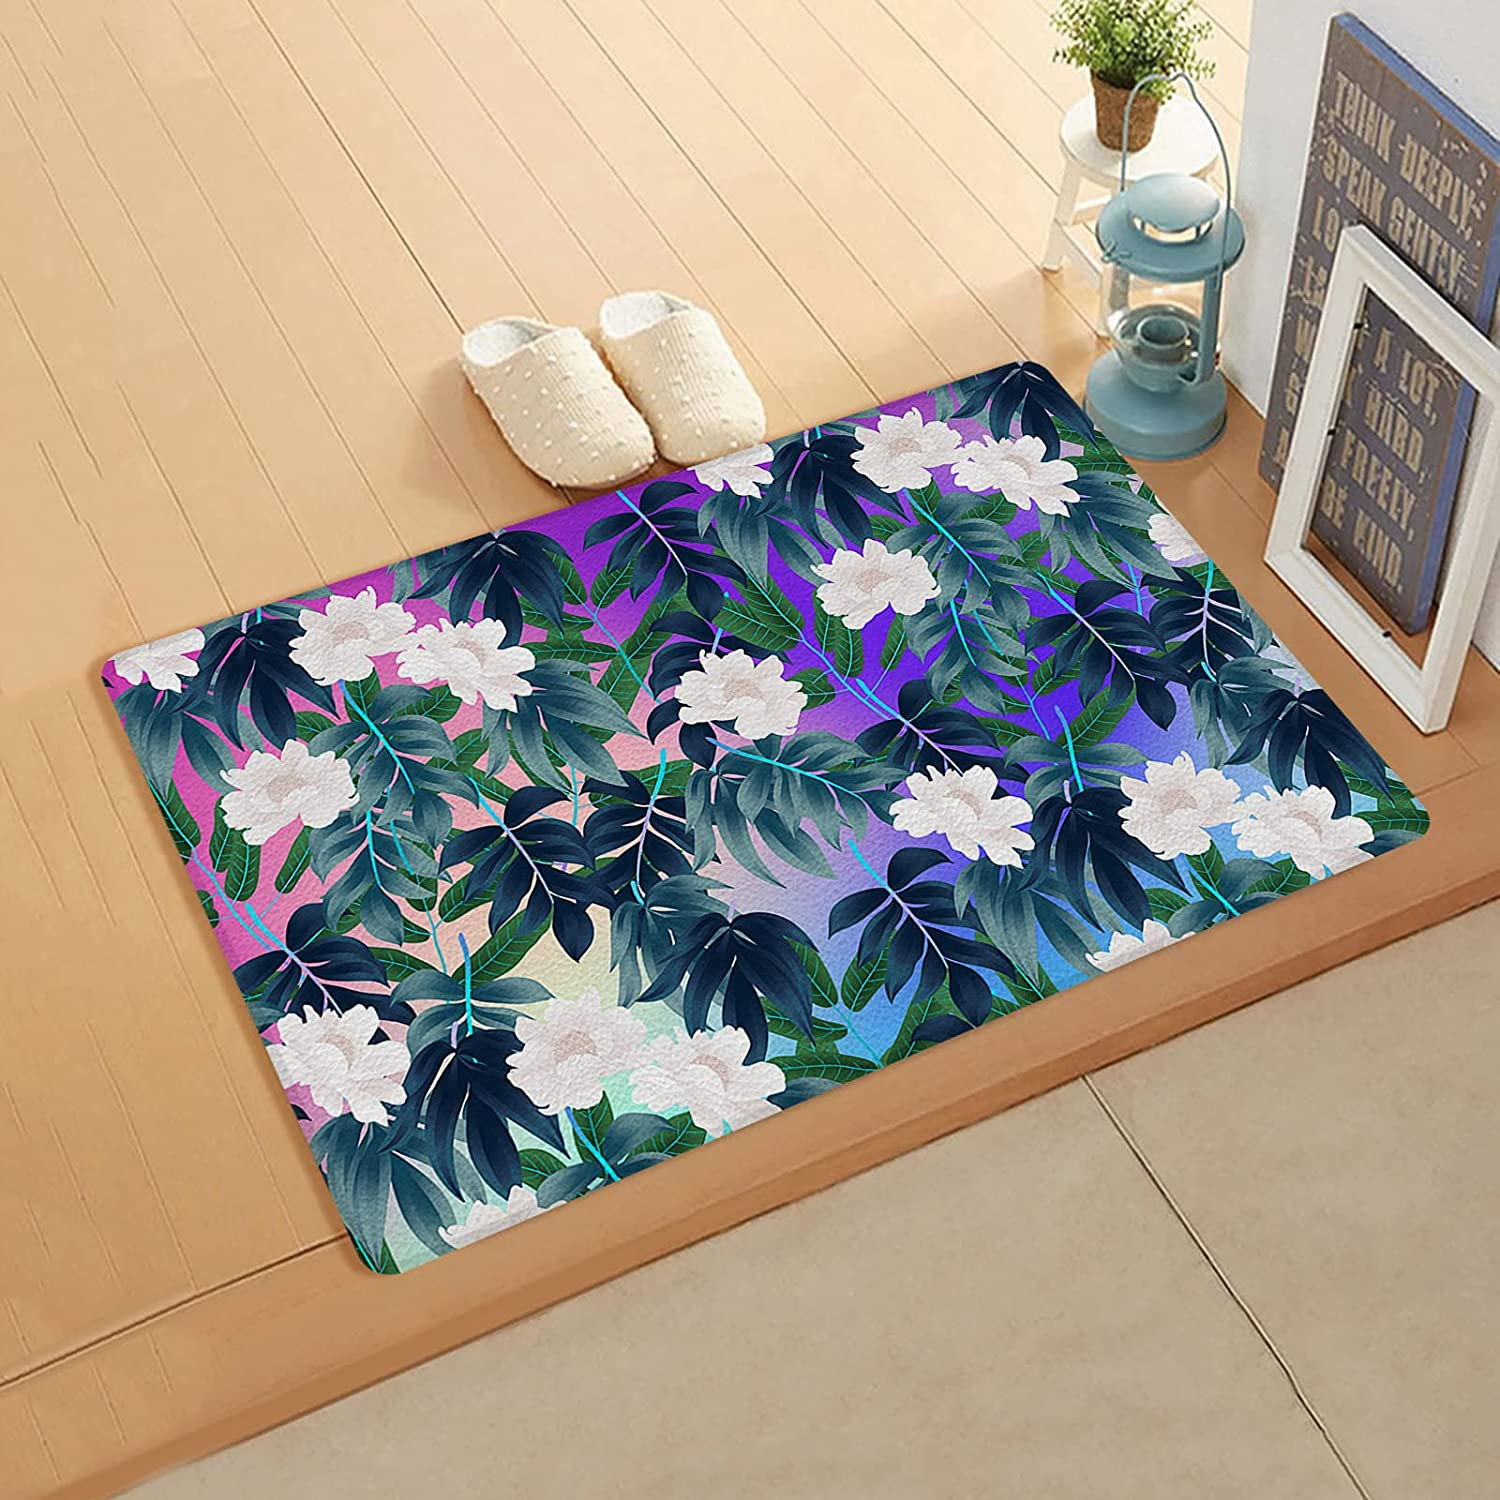 Cushioned Anti Fatigue Kitchen Mat Regular discount Leaves Forest Garden Flower Super beauty product restock quality top